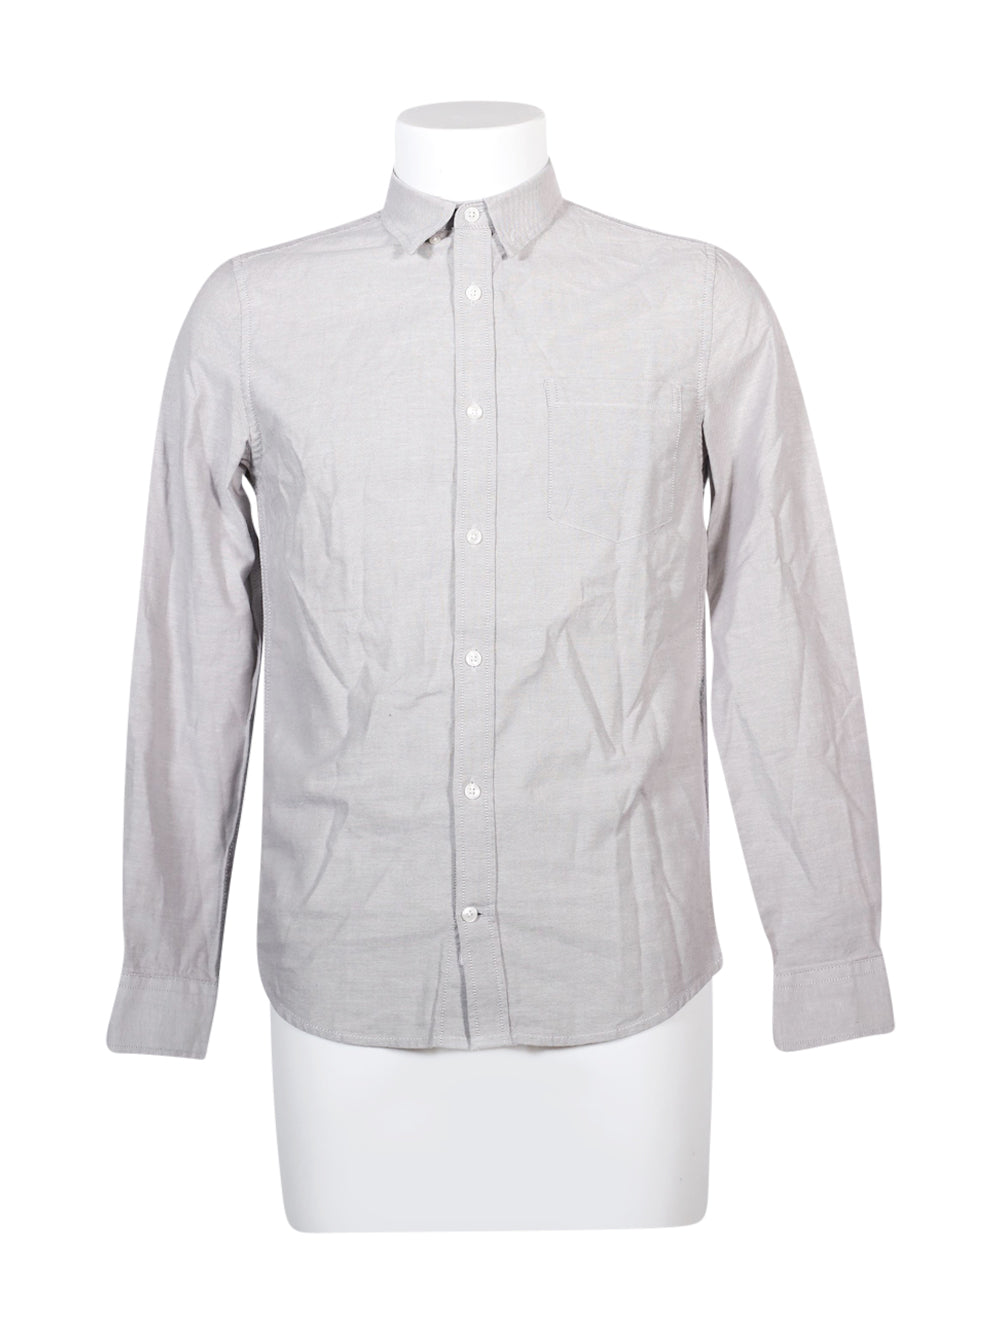 Front photo of Preloved Burton Grey Man's shirt - size 36/S